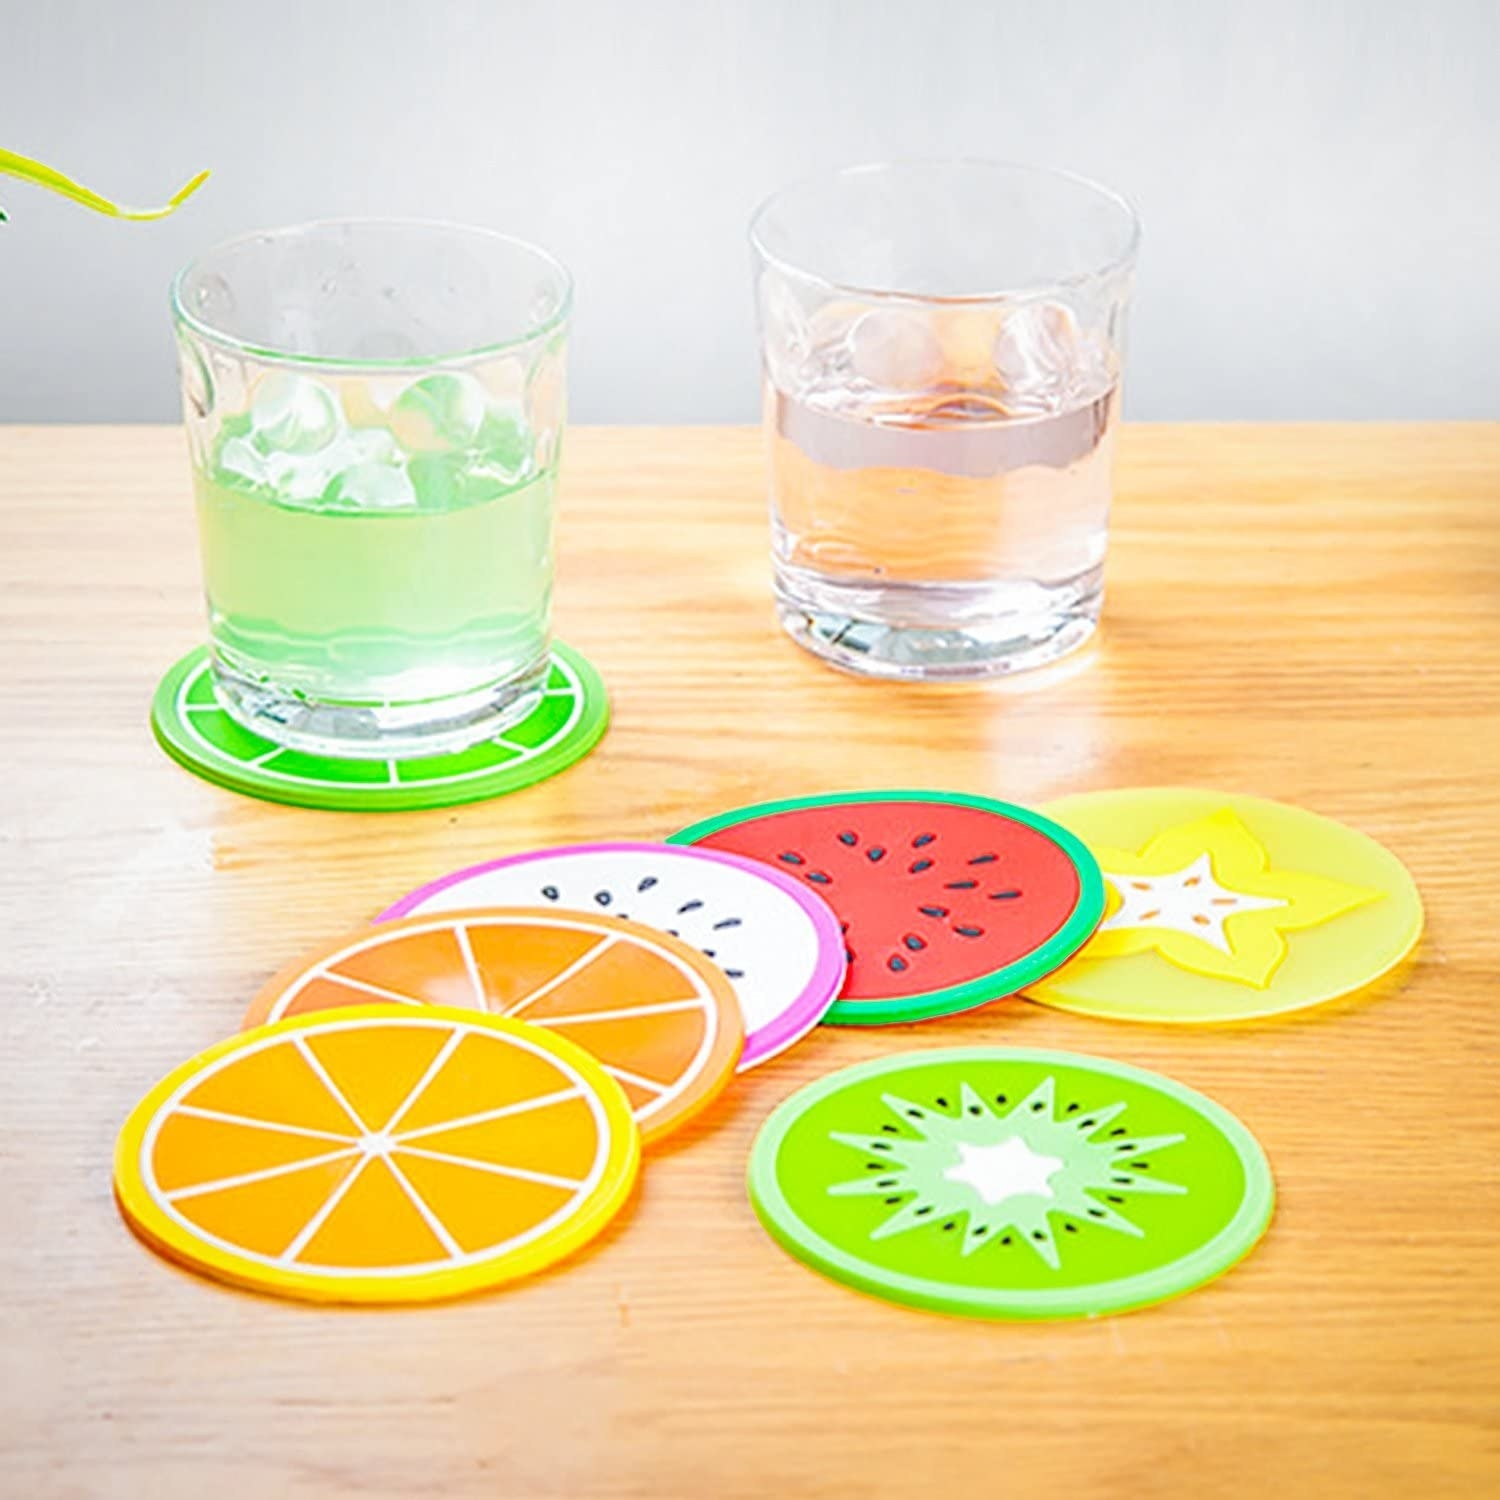 A set of round silicone coasters on a table They each look like a different sliced fruit